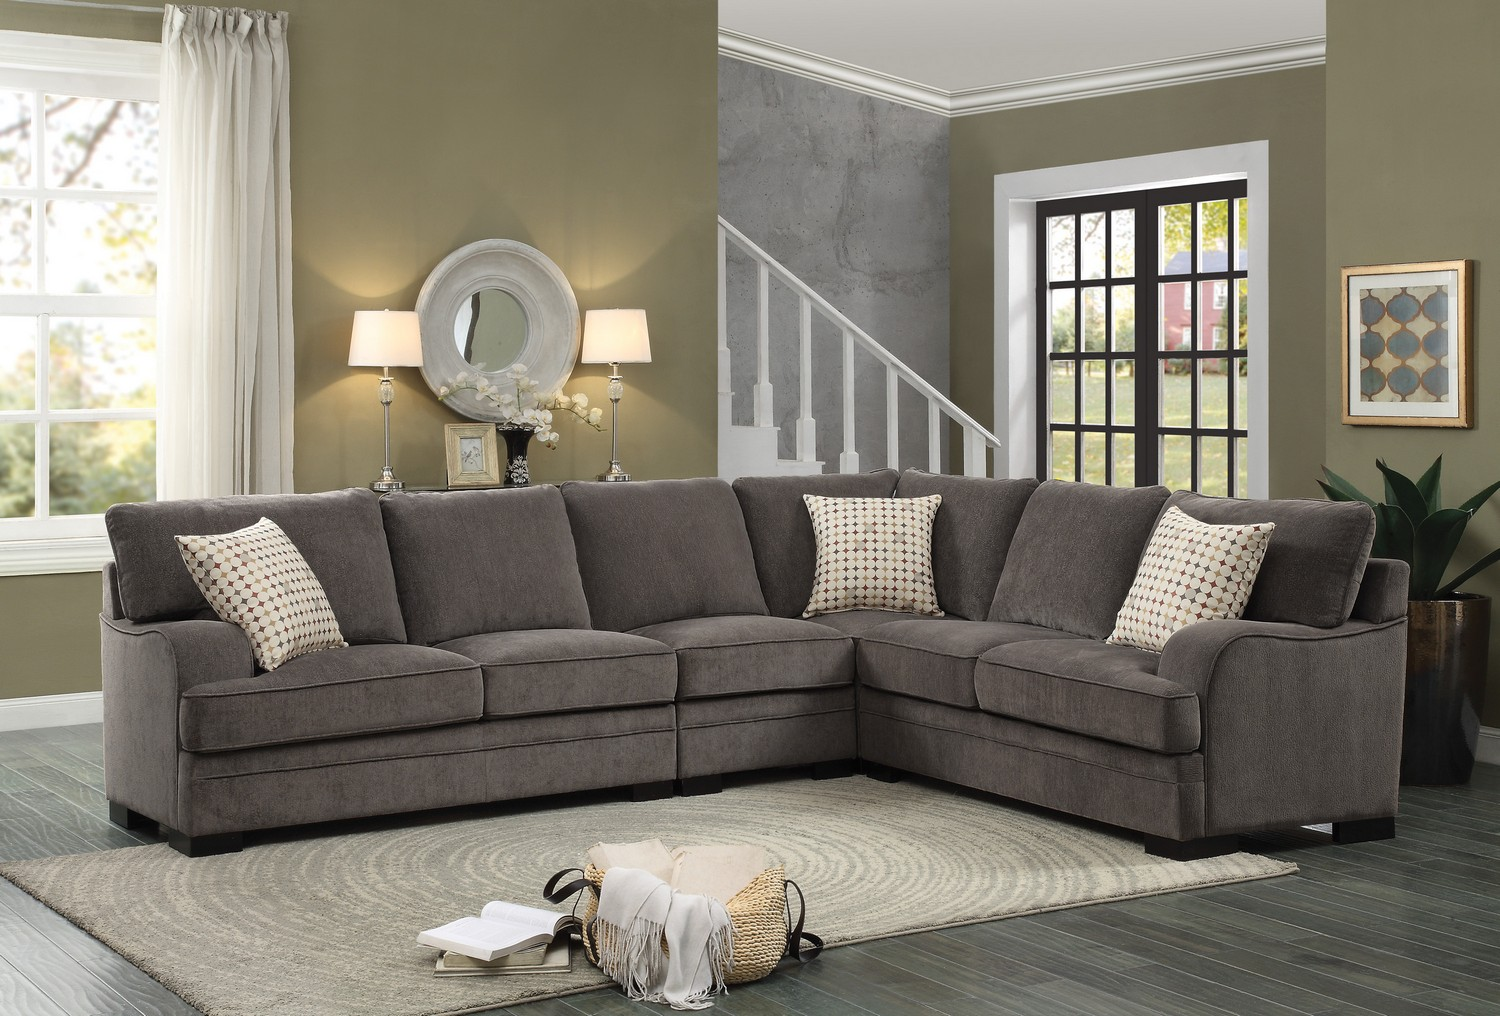 Homelegance Alamosa Sectional Sofa Set - Chenille - Brown : chenille sectional sofas - Sectionals, Sofas & Couches